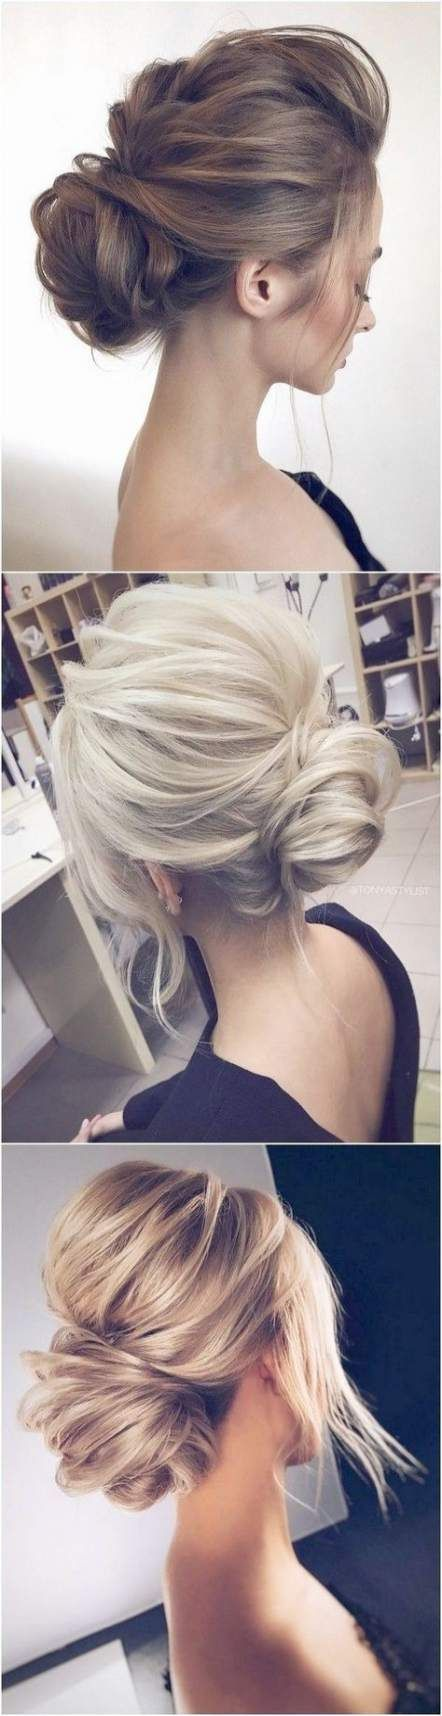 38 Trendy Ideas Hairstyles Wedding Medium Hair Simple Updo